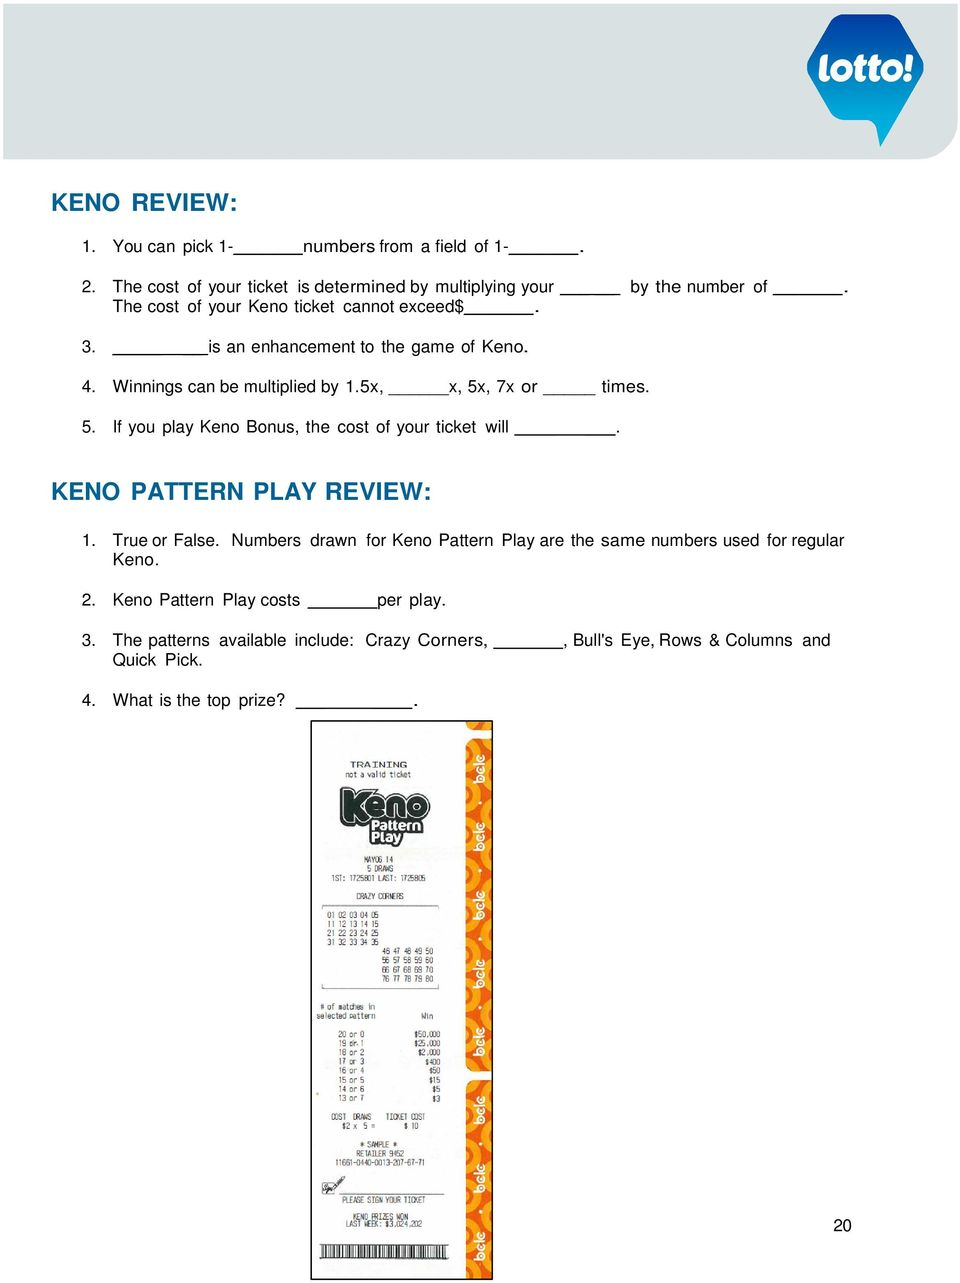 , 7x or times. 5. If you play Keno Bonus, the cost of your ticket will. KENO PATTERN PLAY REVIEW: 1. True or False.